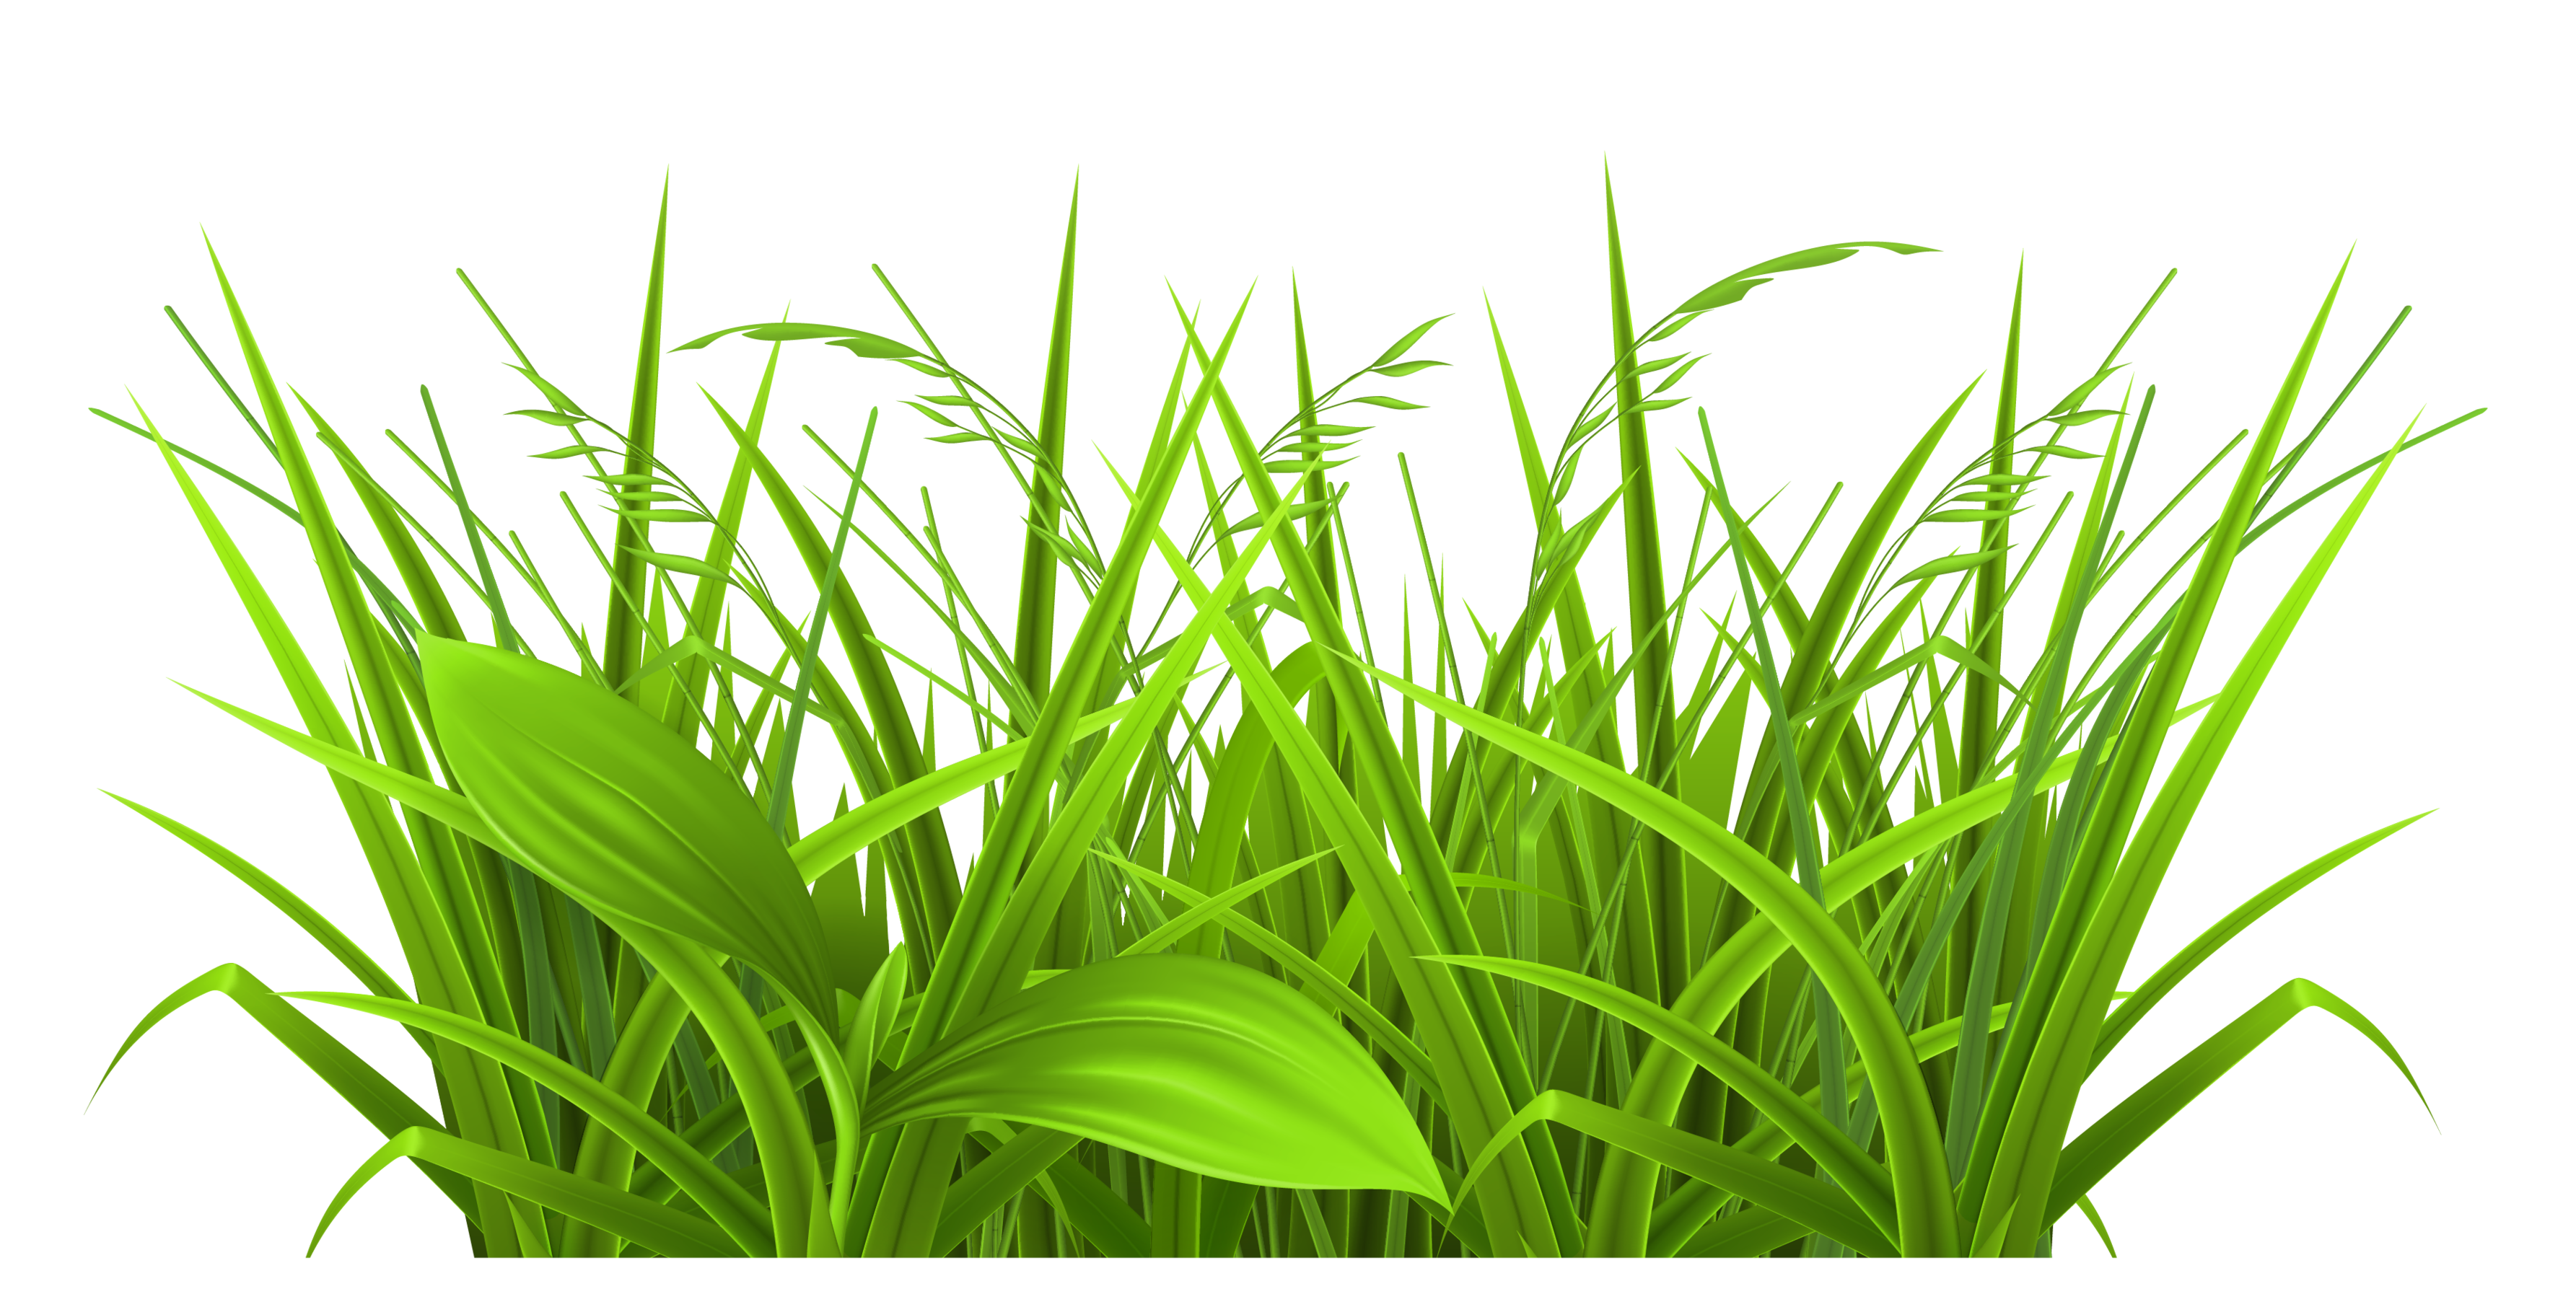 Plants clipart grass, Plants grass Transparent FREE for.